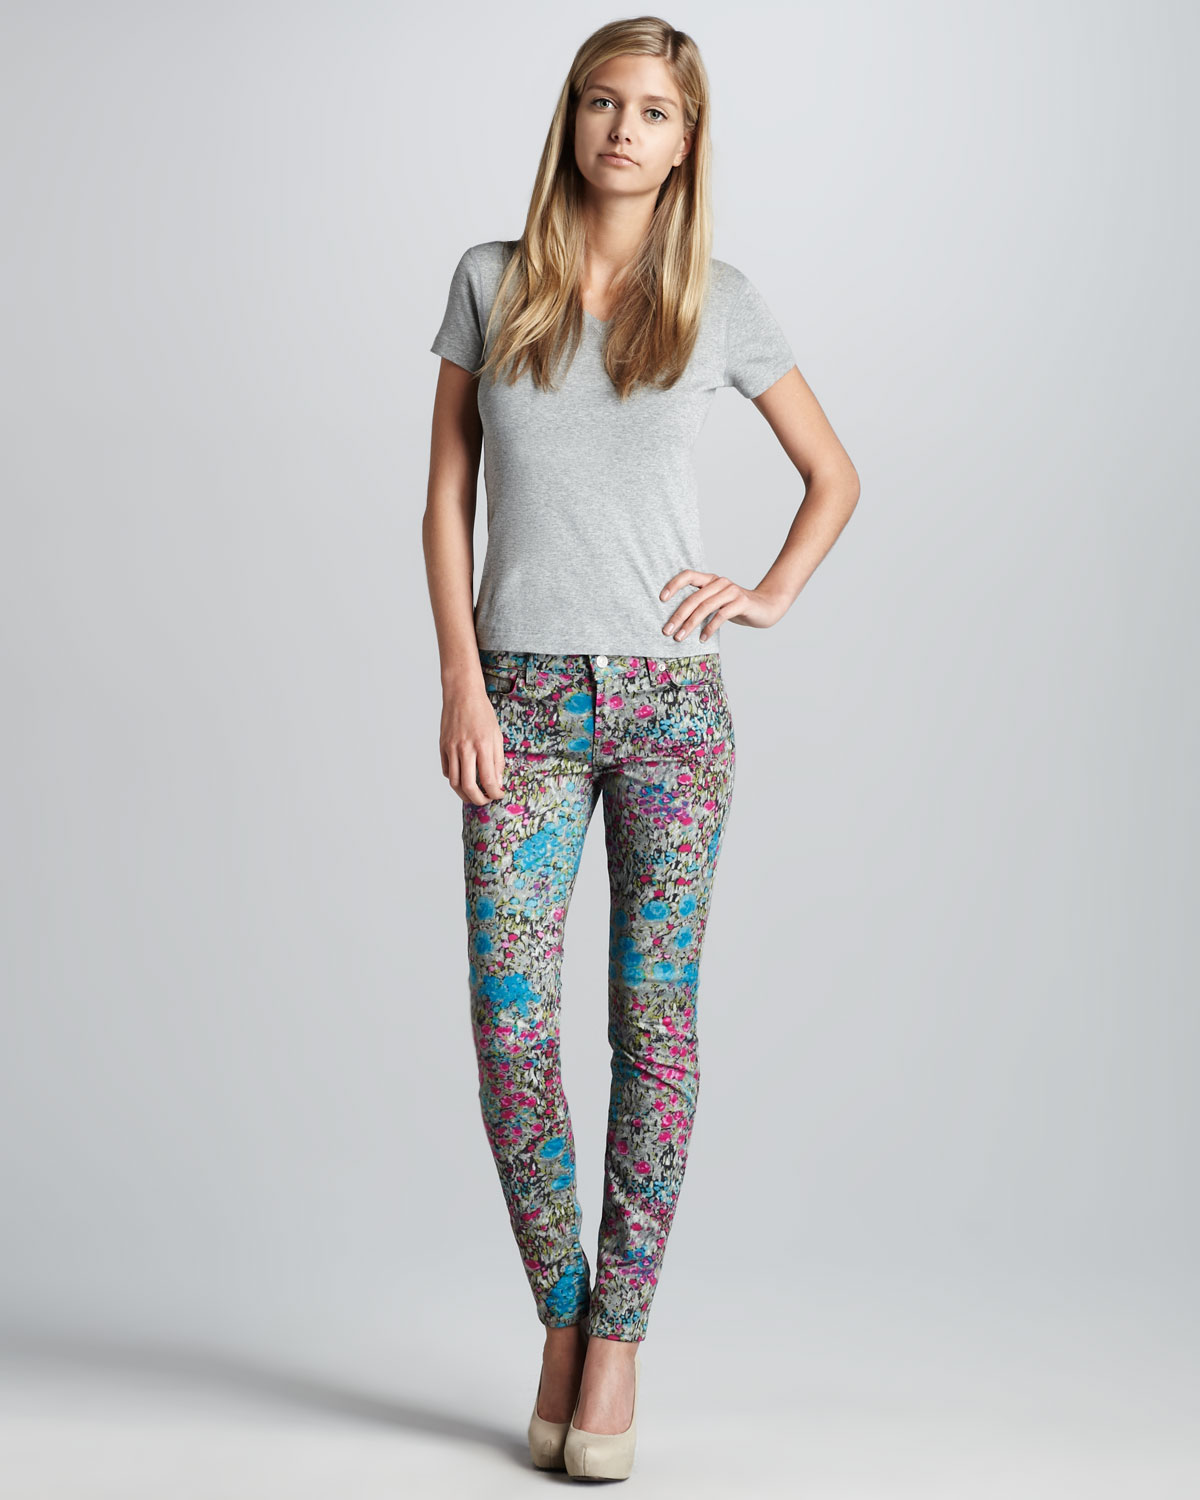 for all mankind multicolor jeans skinny jeans in garden party. Black Bedroom Furniture Sets. Home Design Ideas